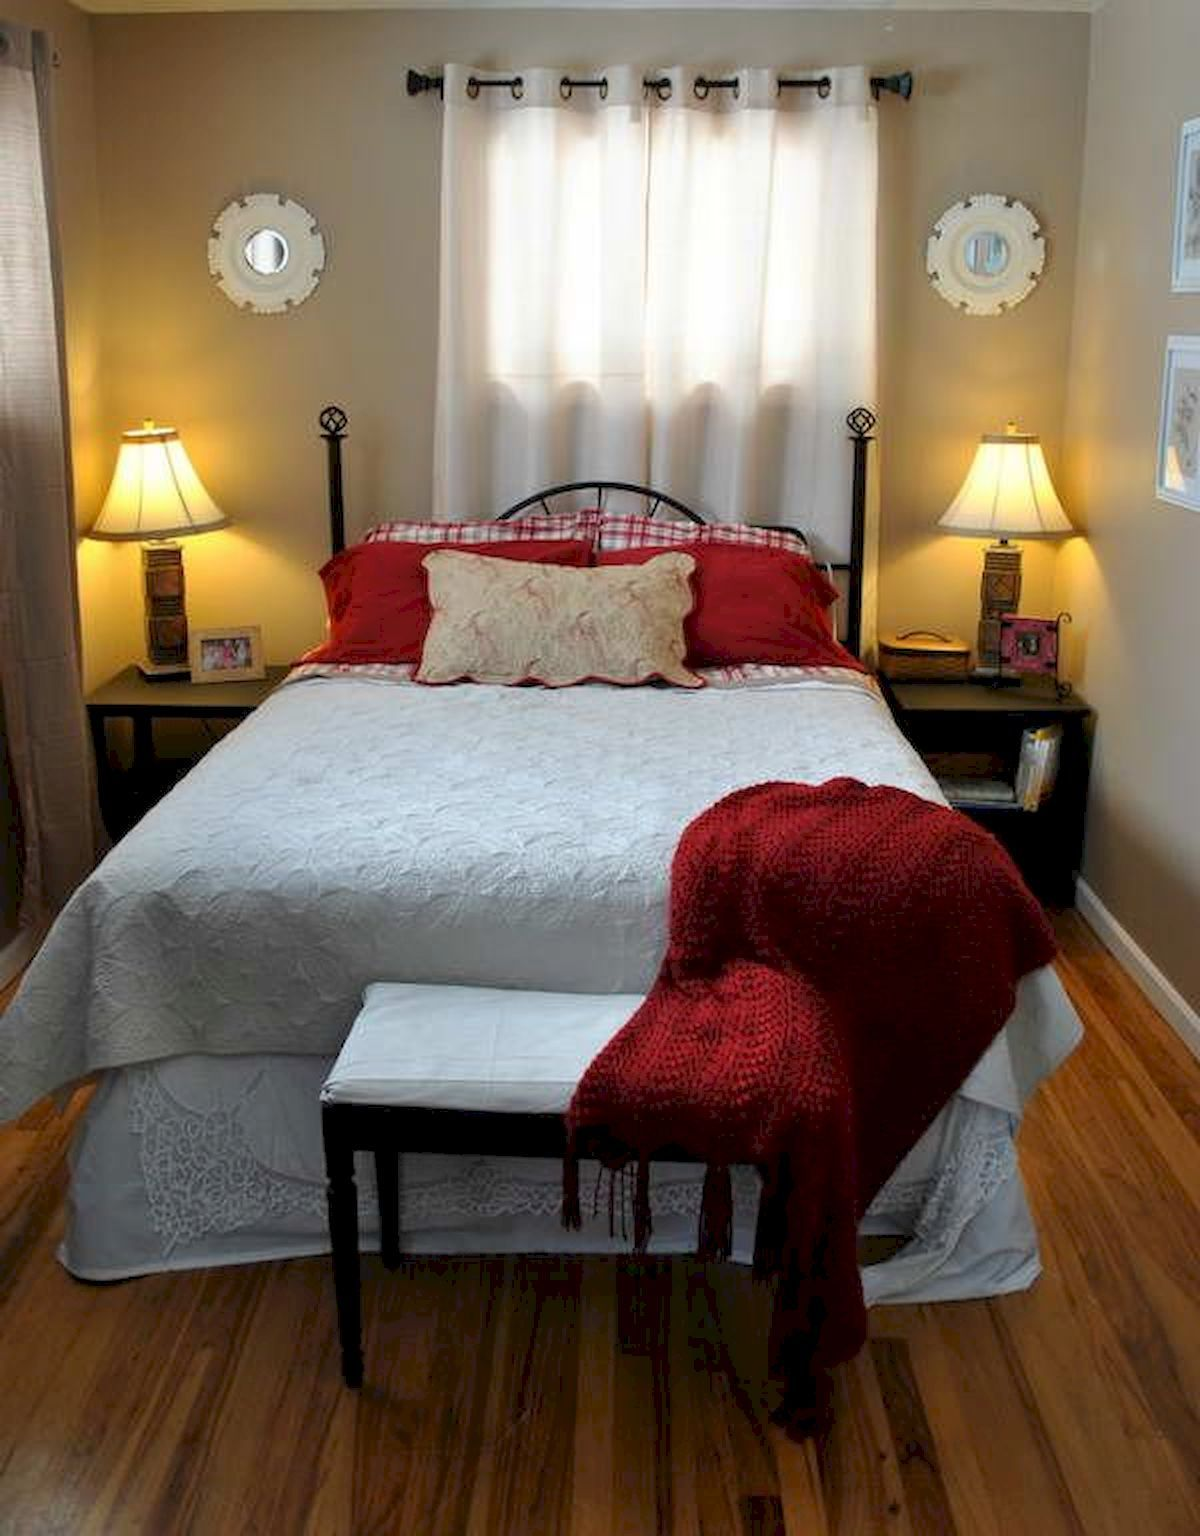 Brilliant 30 Awesome Small Bedroom Decorating Ideas On A Budget Decorating A Small Bedroom I Very Small Bedroom Small Bedroom Ideas For Couples Small Bedroom